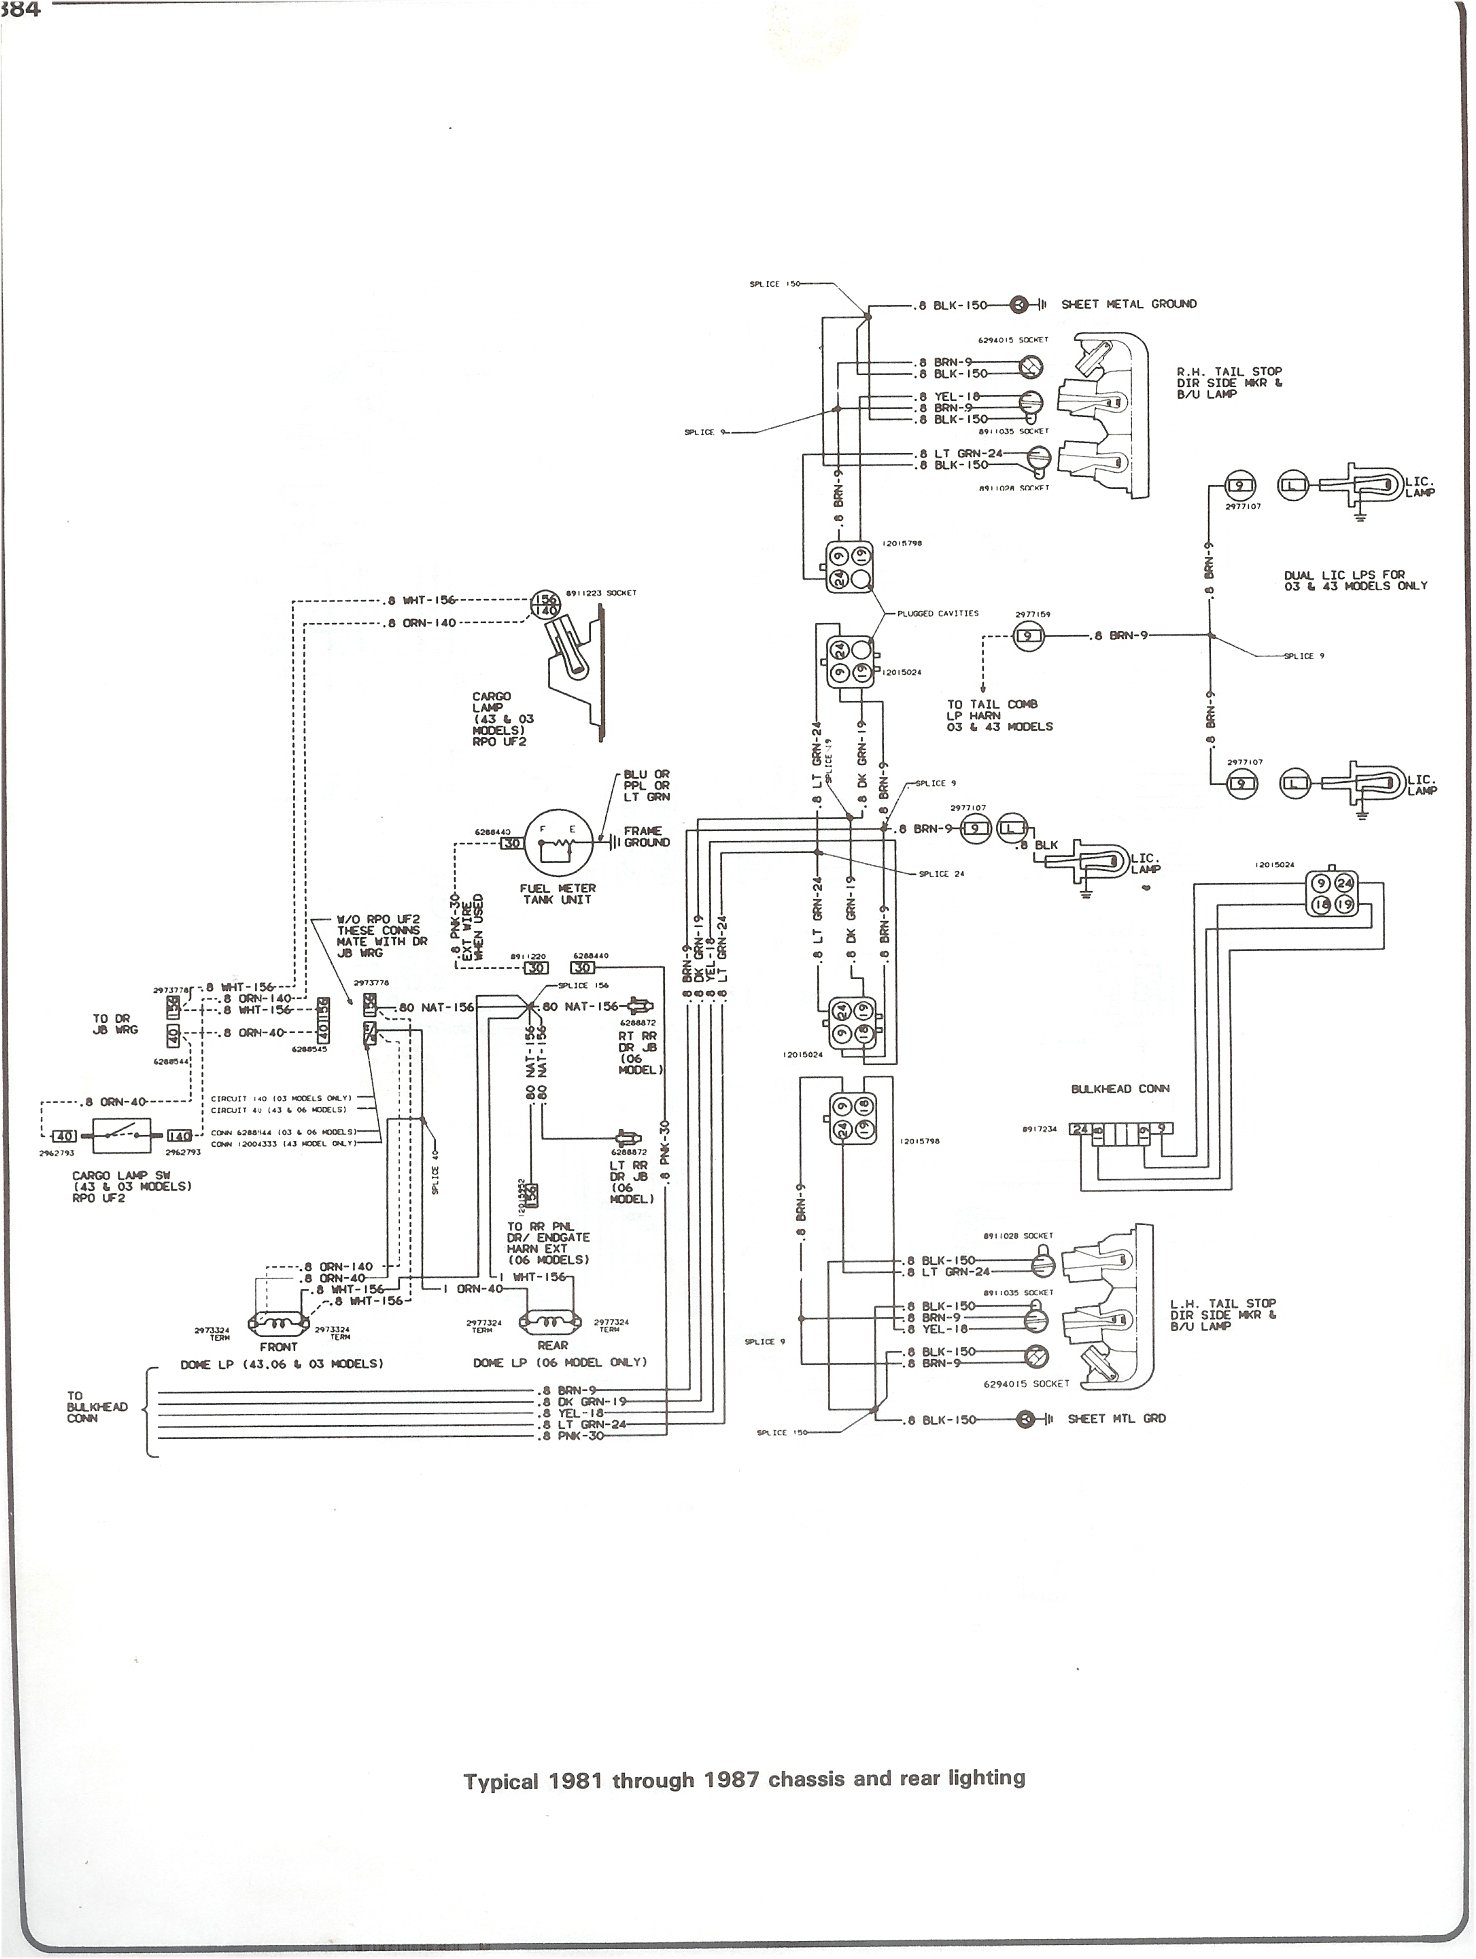 97 Civic Radio Wire Diagram Wiring Will Be A Thing 94 Honda Dx Chevy Silverado Drawing At Getdrawings Com Free For 1997 Stereo